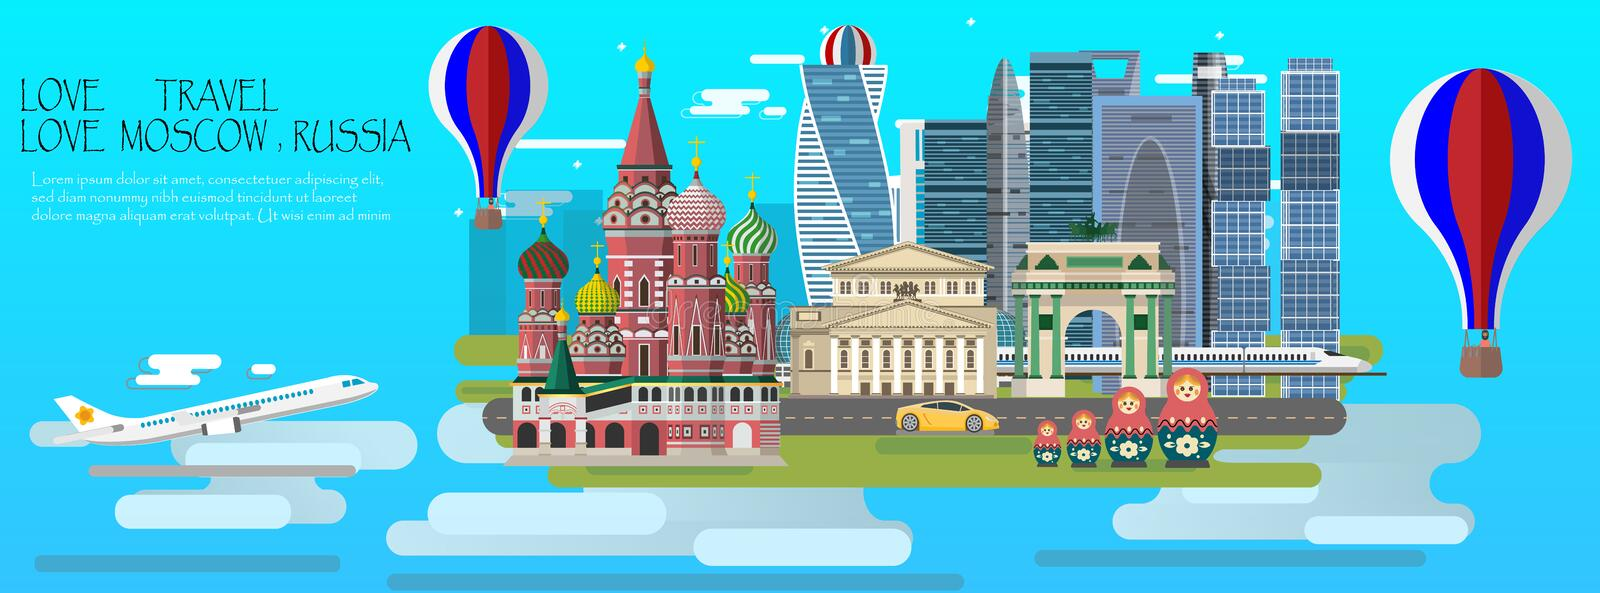 Travel infographic. Moscow infographic tourist sights of Russia vector illustration